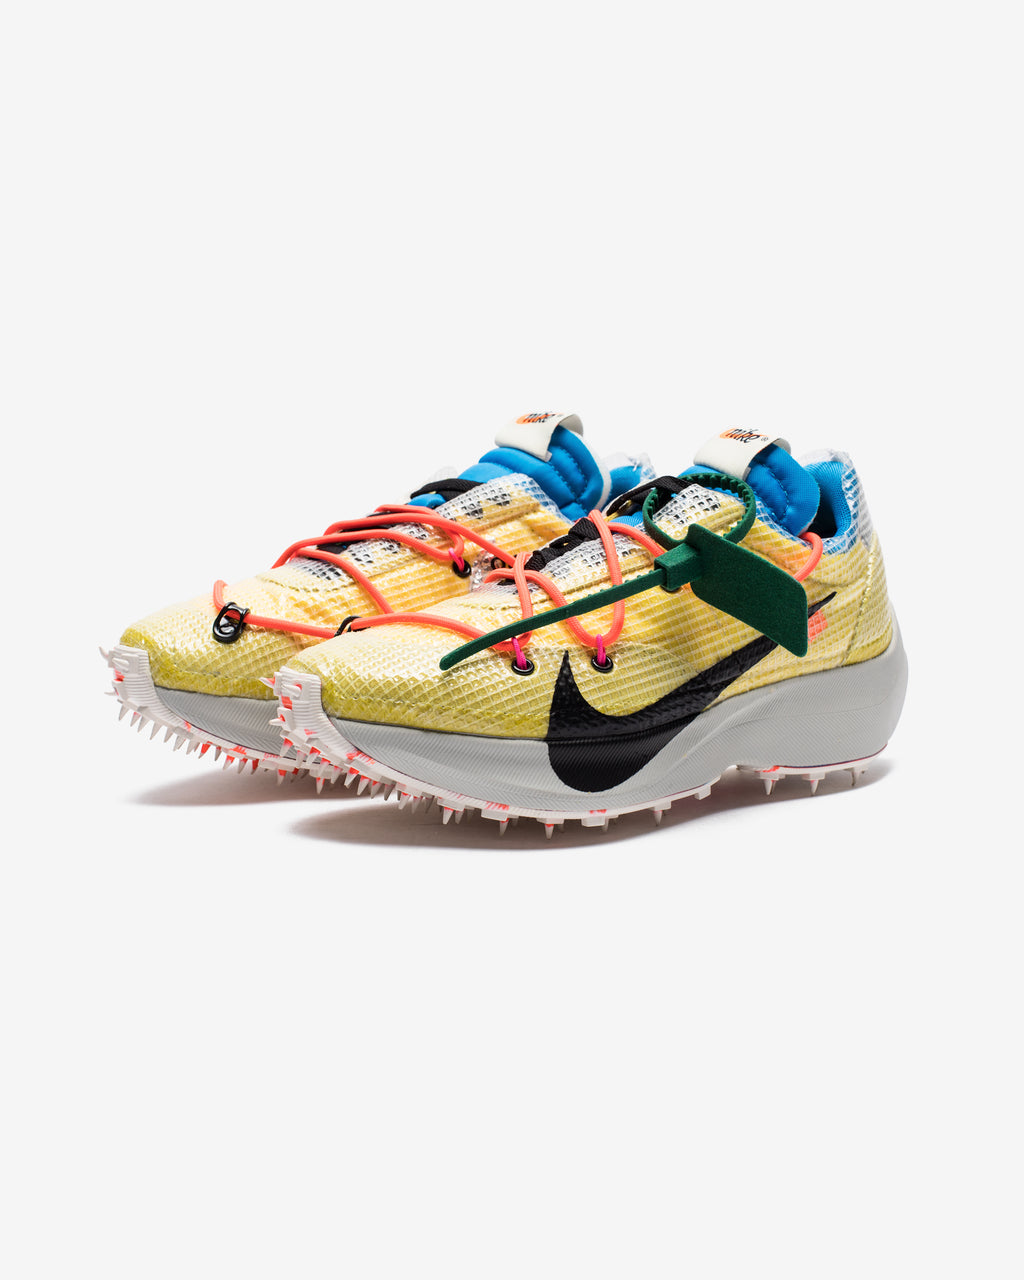 NIKE X OFF-WHITE WOMEN'S VAPOR STREET - TOURYELLOW/LIGHTBONE